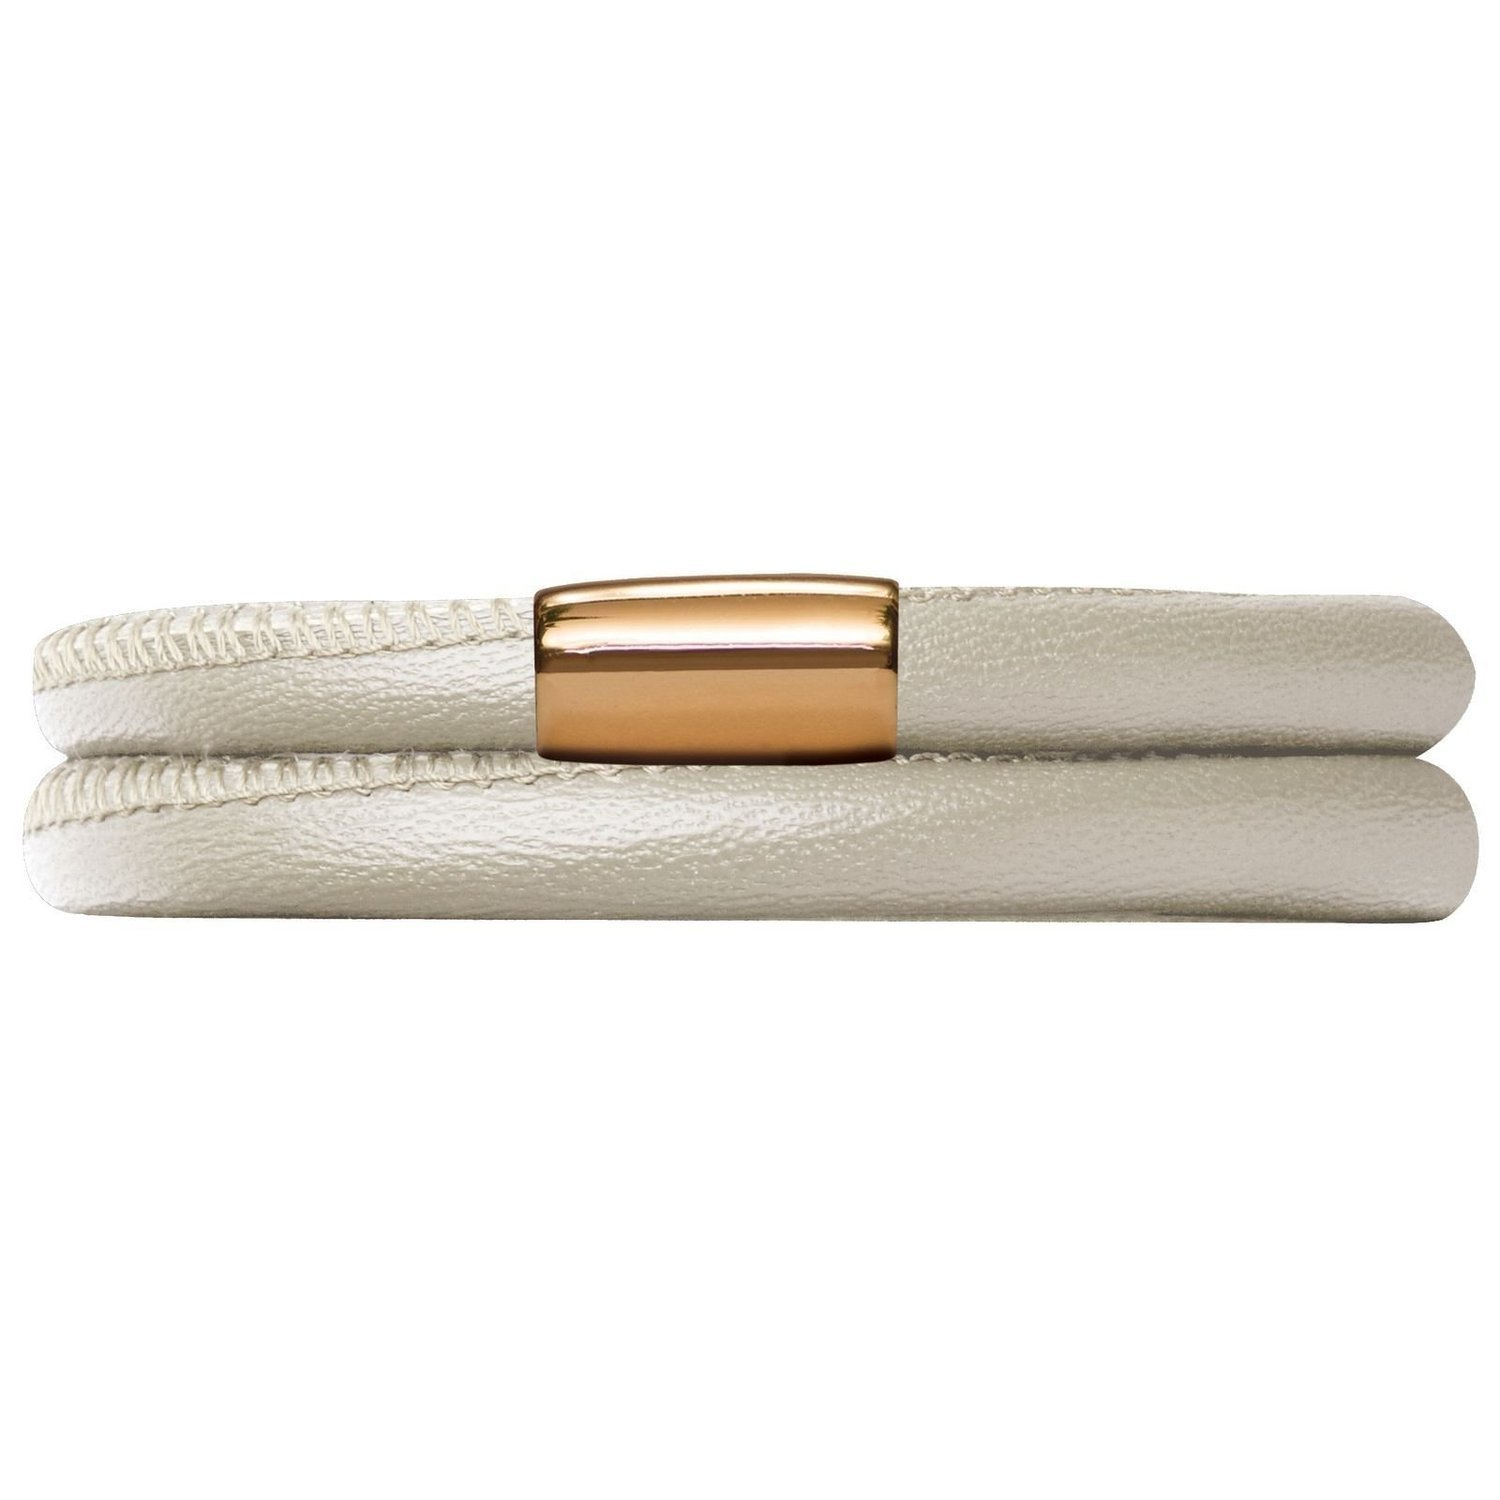 Jennifer Lopez Genuine Leather Bracelet in Creme Metallic Double with Gold Plate